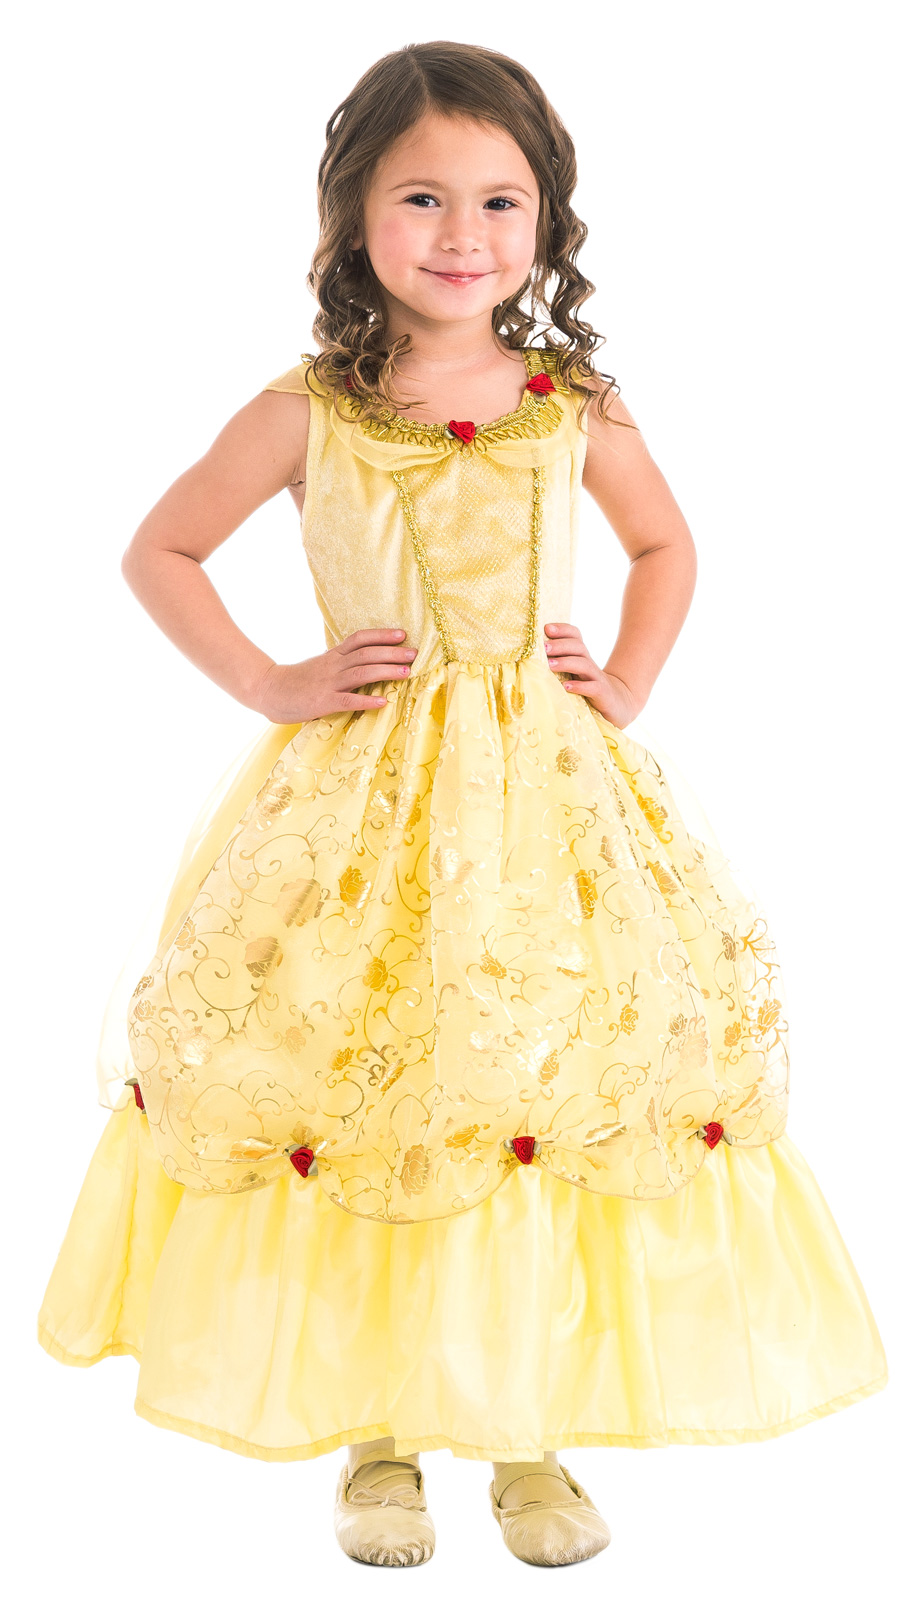 belle of the ball beauty dress up costume for girls